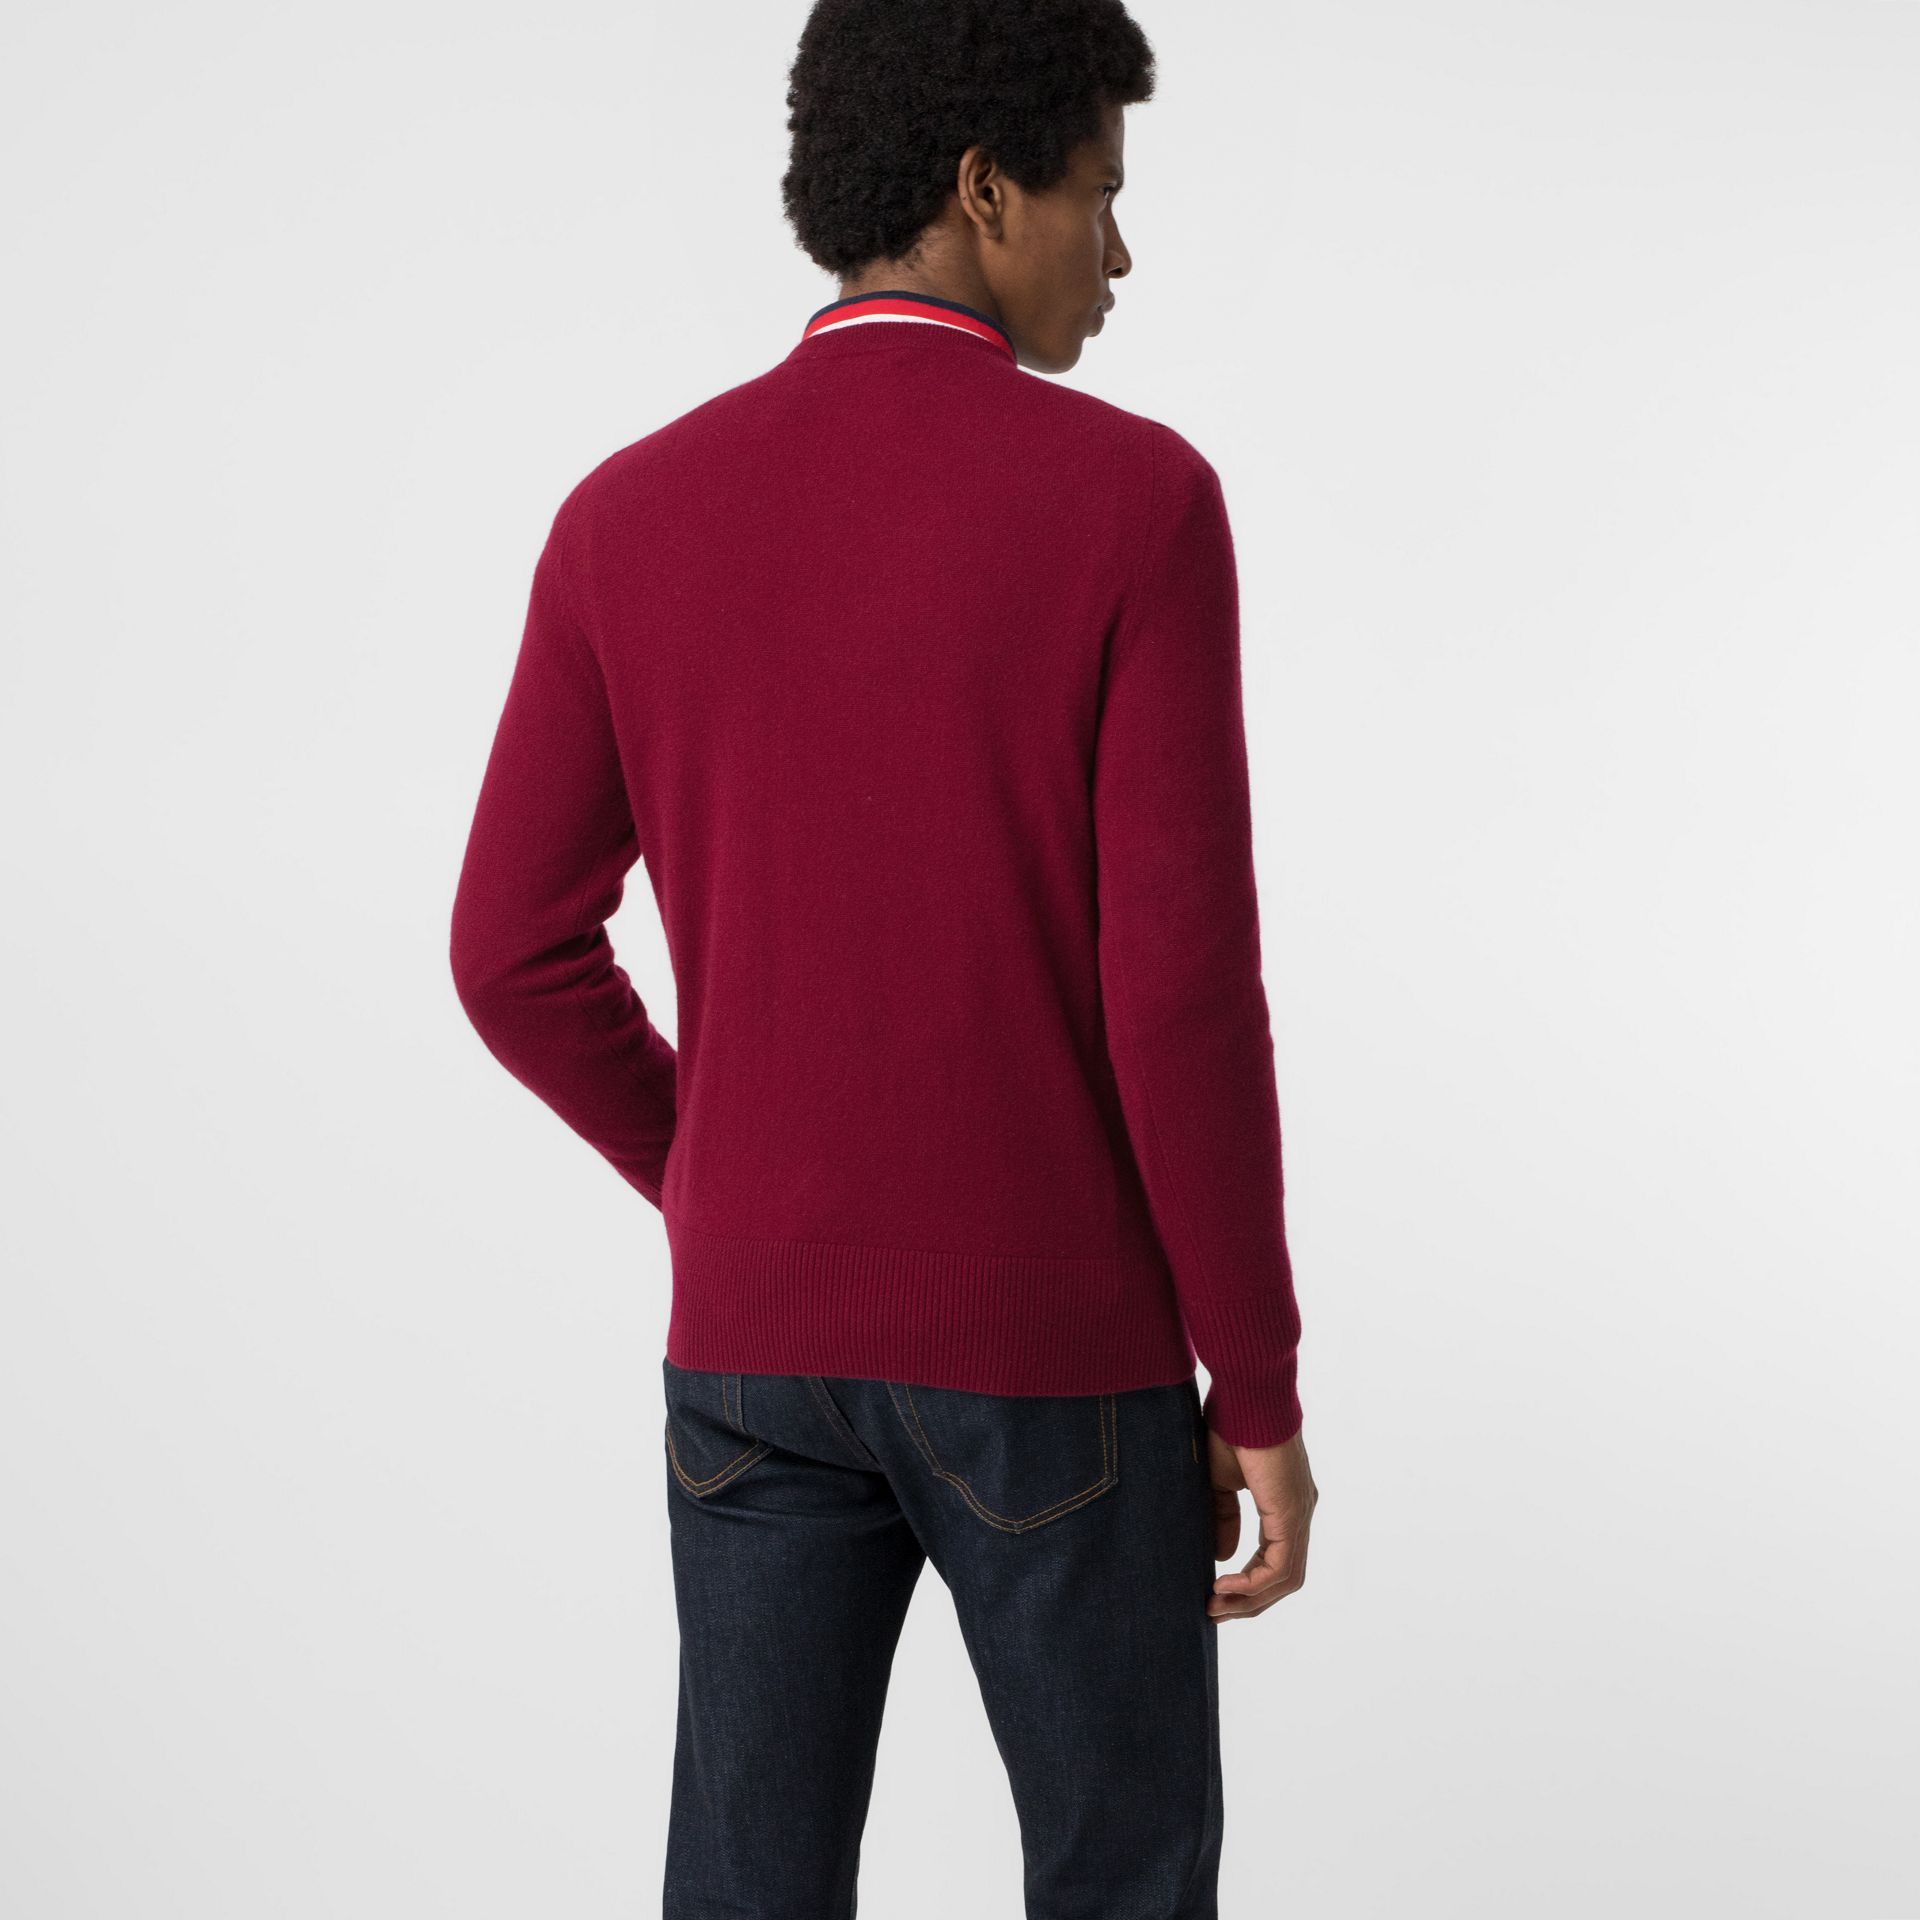 Embroidered Logo Cashmere Sweater in Claret - Men | Burberry Singapore - gallery image 2